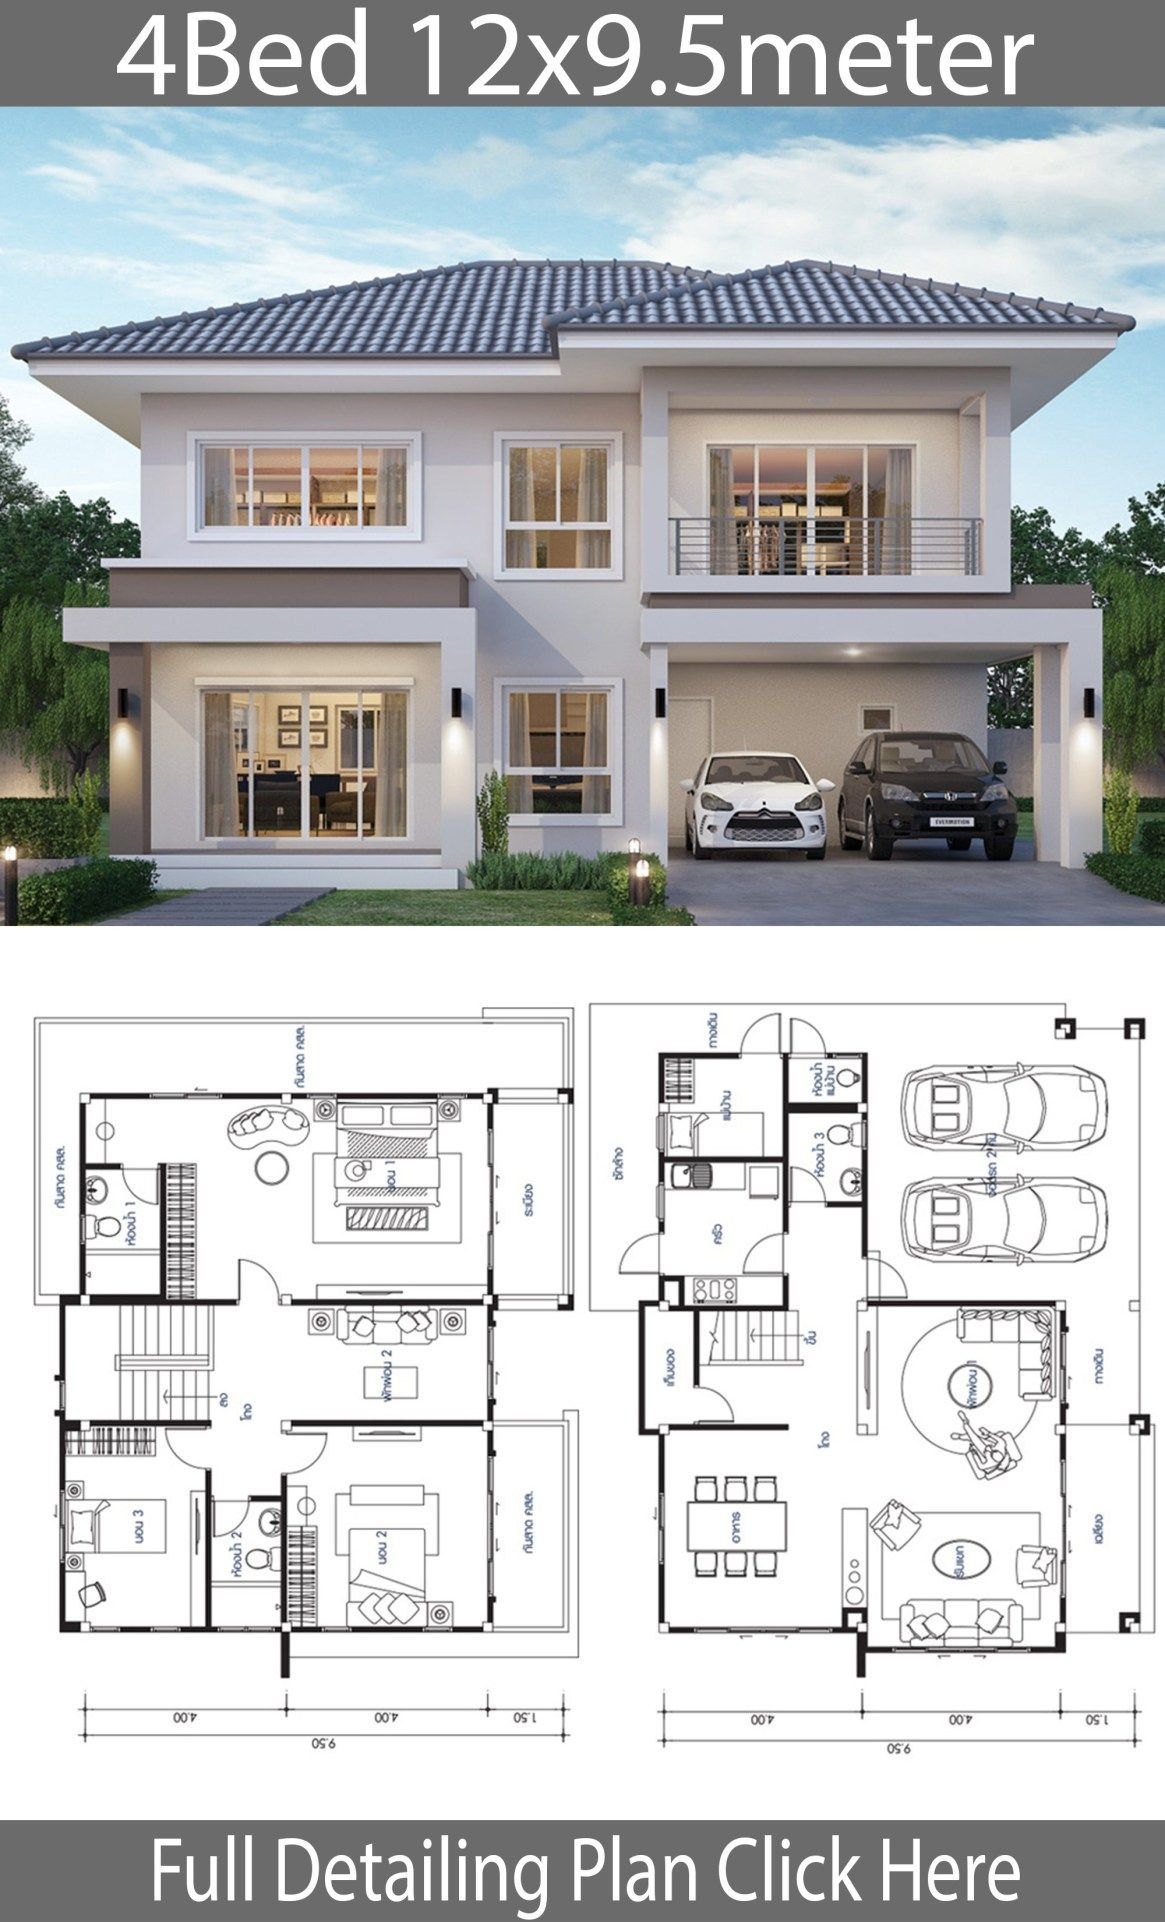 House Design Plan 12 9 5m With 4 Bedrooms In 2020 2 Storey House Design 4 Bedroom House Designs Model House Plan